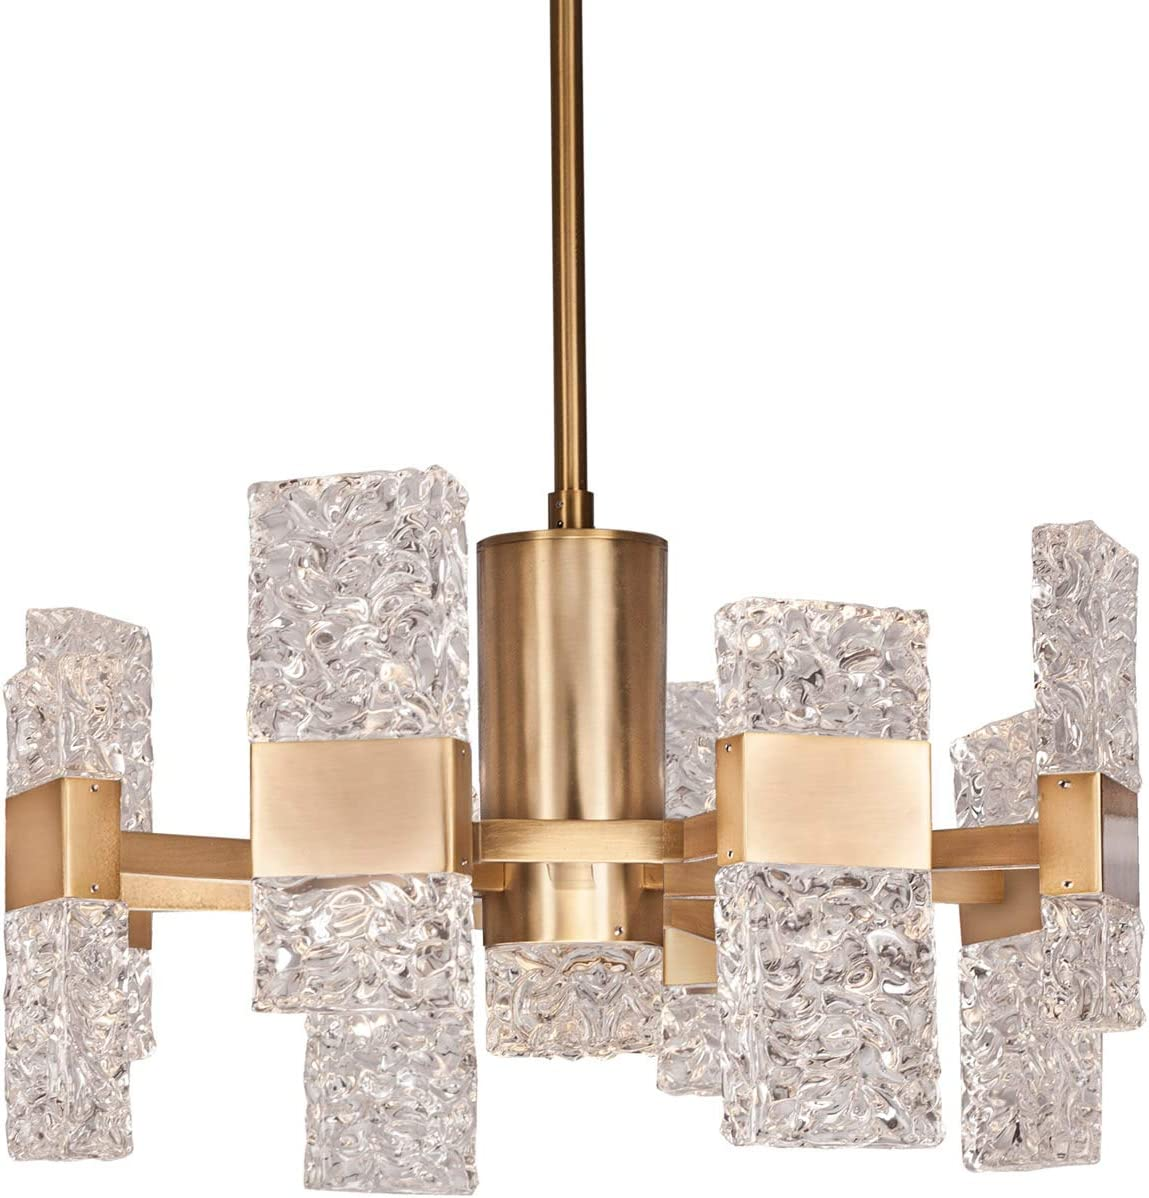 Kuzco Lighting CH9522-GB Oslo – Chandelier Ice Inspired, Molded Hand-Crafted Glass